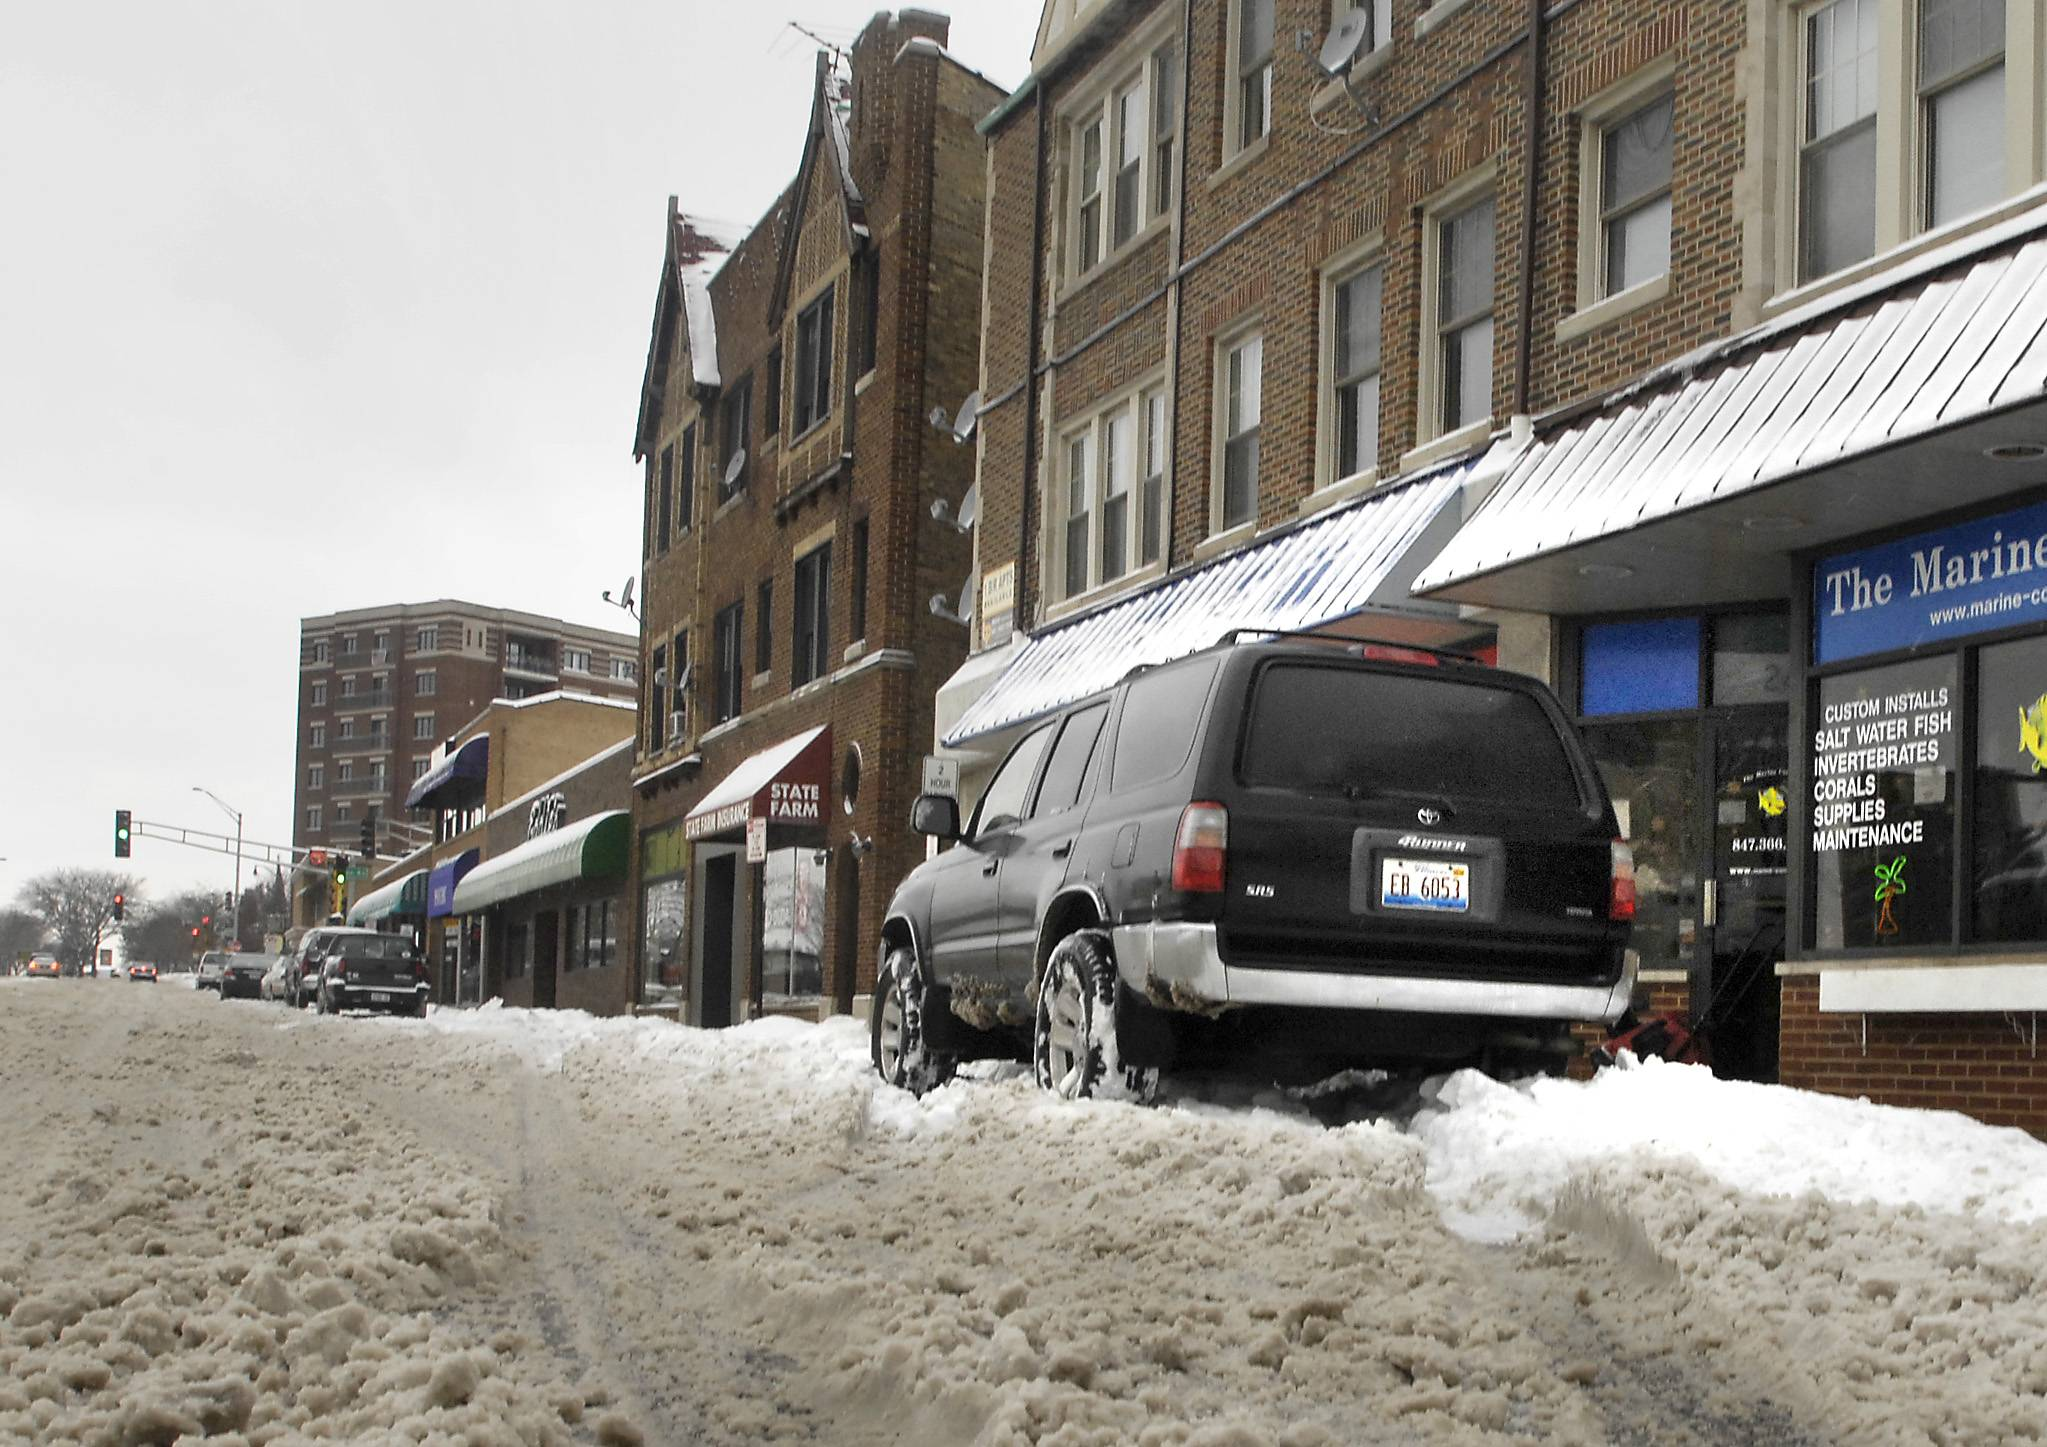 Issues like parking and snow removal are among the concerns of small business owners in Arlington Heights, but perhaps their top challenge is dealing in government language instead of that of the business community, a chamber of commerce official told village officials this week.